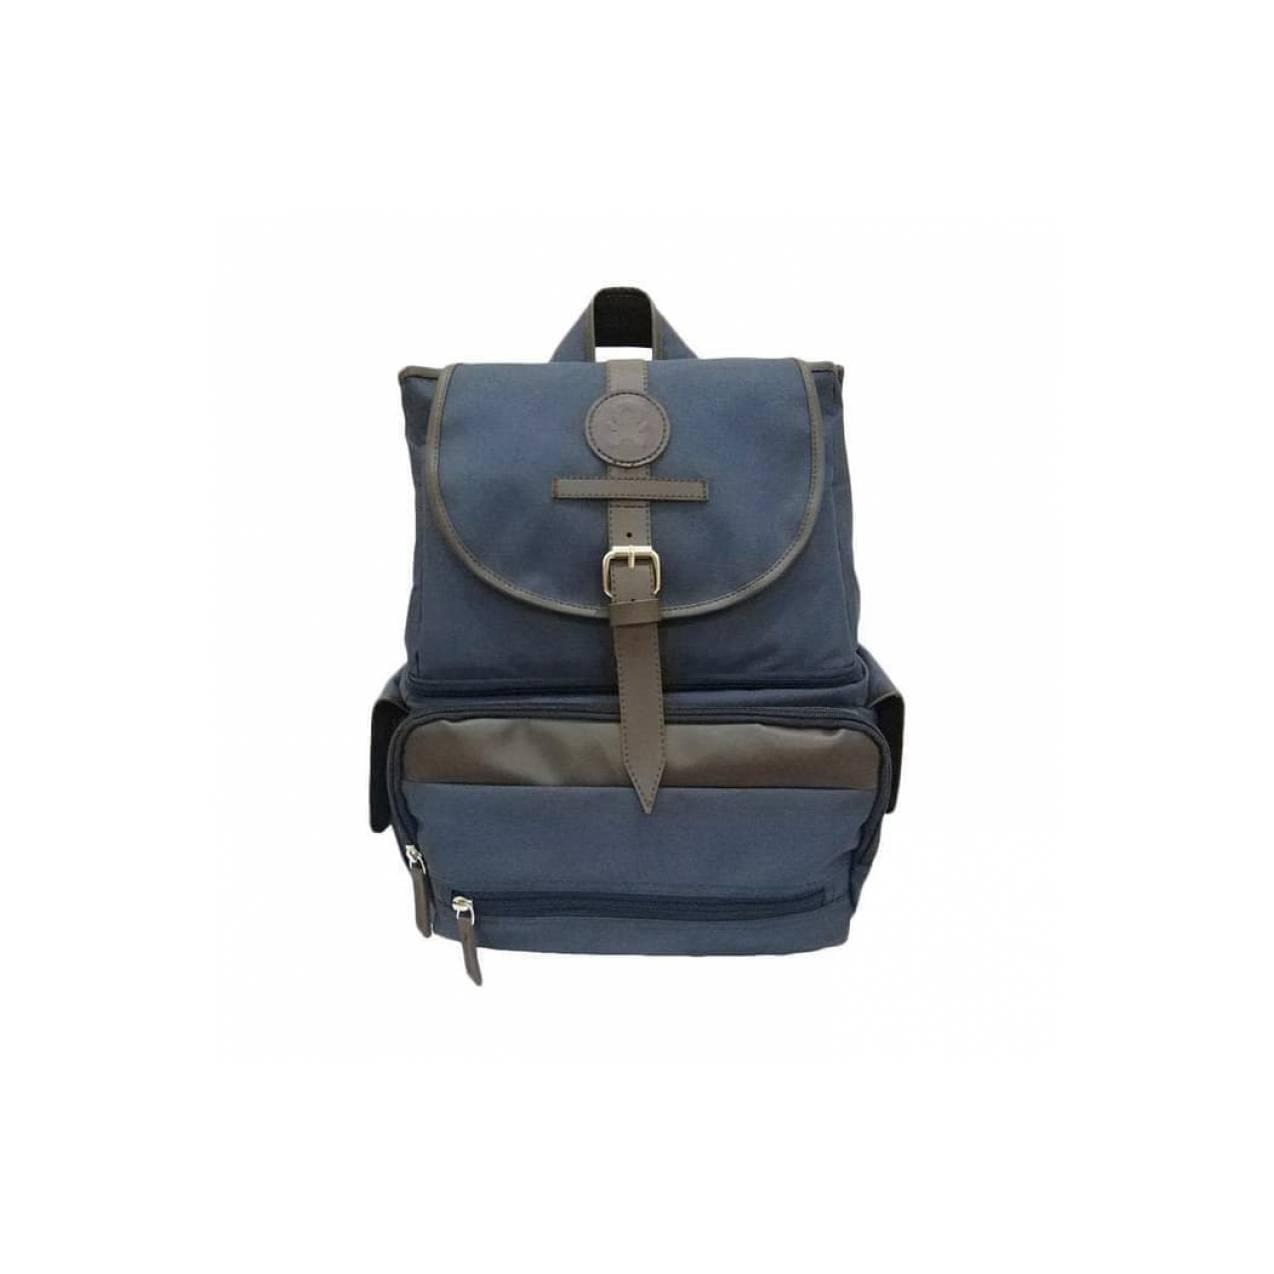 Buy Sell Cheapest Babygo Inc Cooler Best Quality Product Deals Bag Ollio Backpack Blue Dome